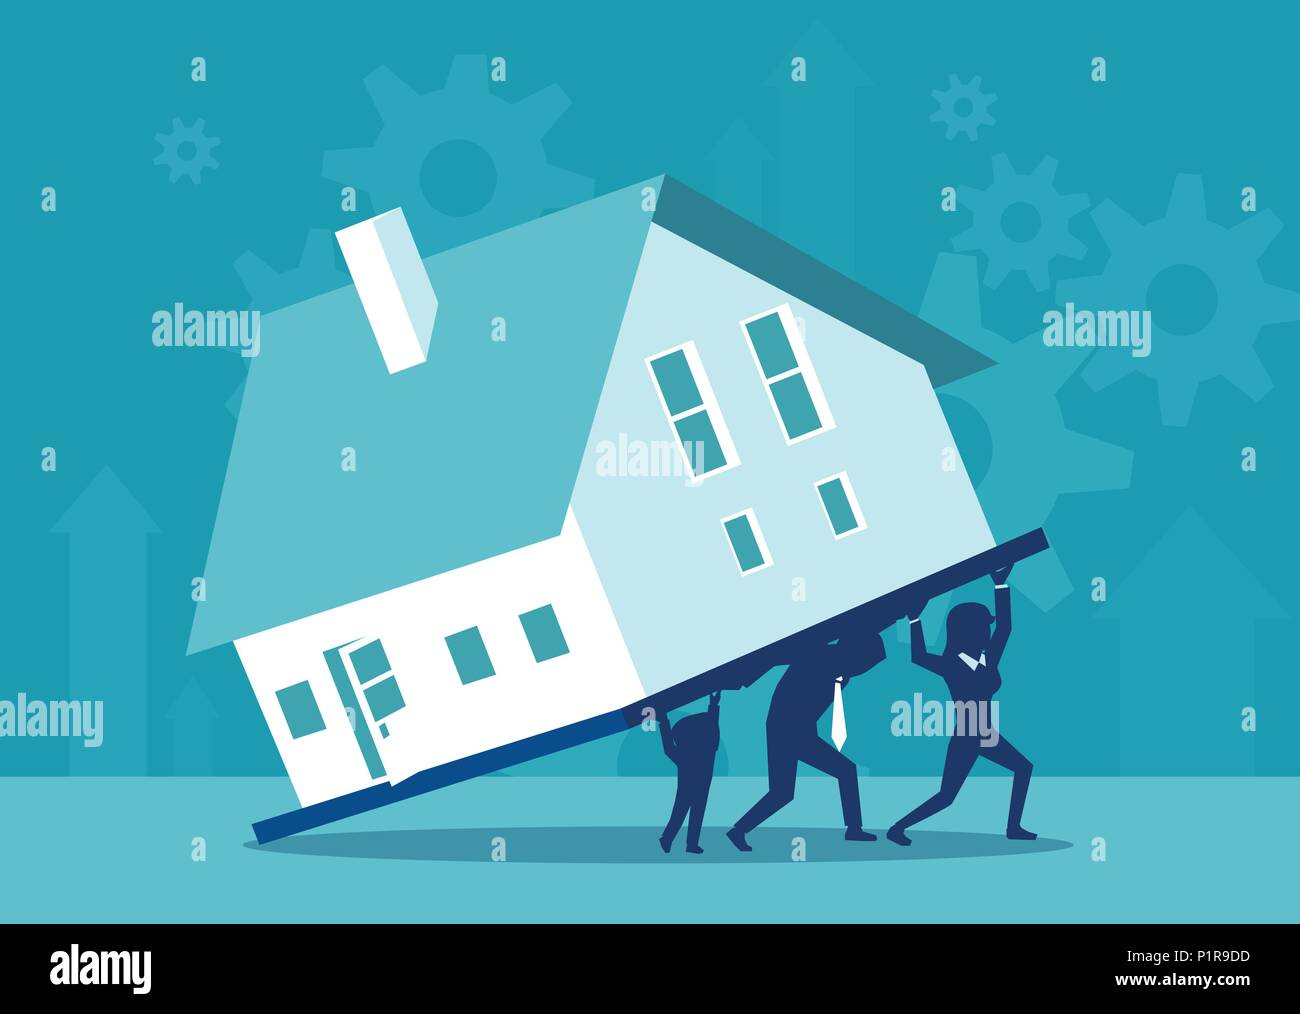 Concept vector illustration of parents and kid carrying burden of house on credit together. - Stock Image